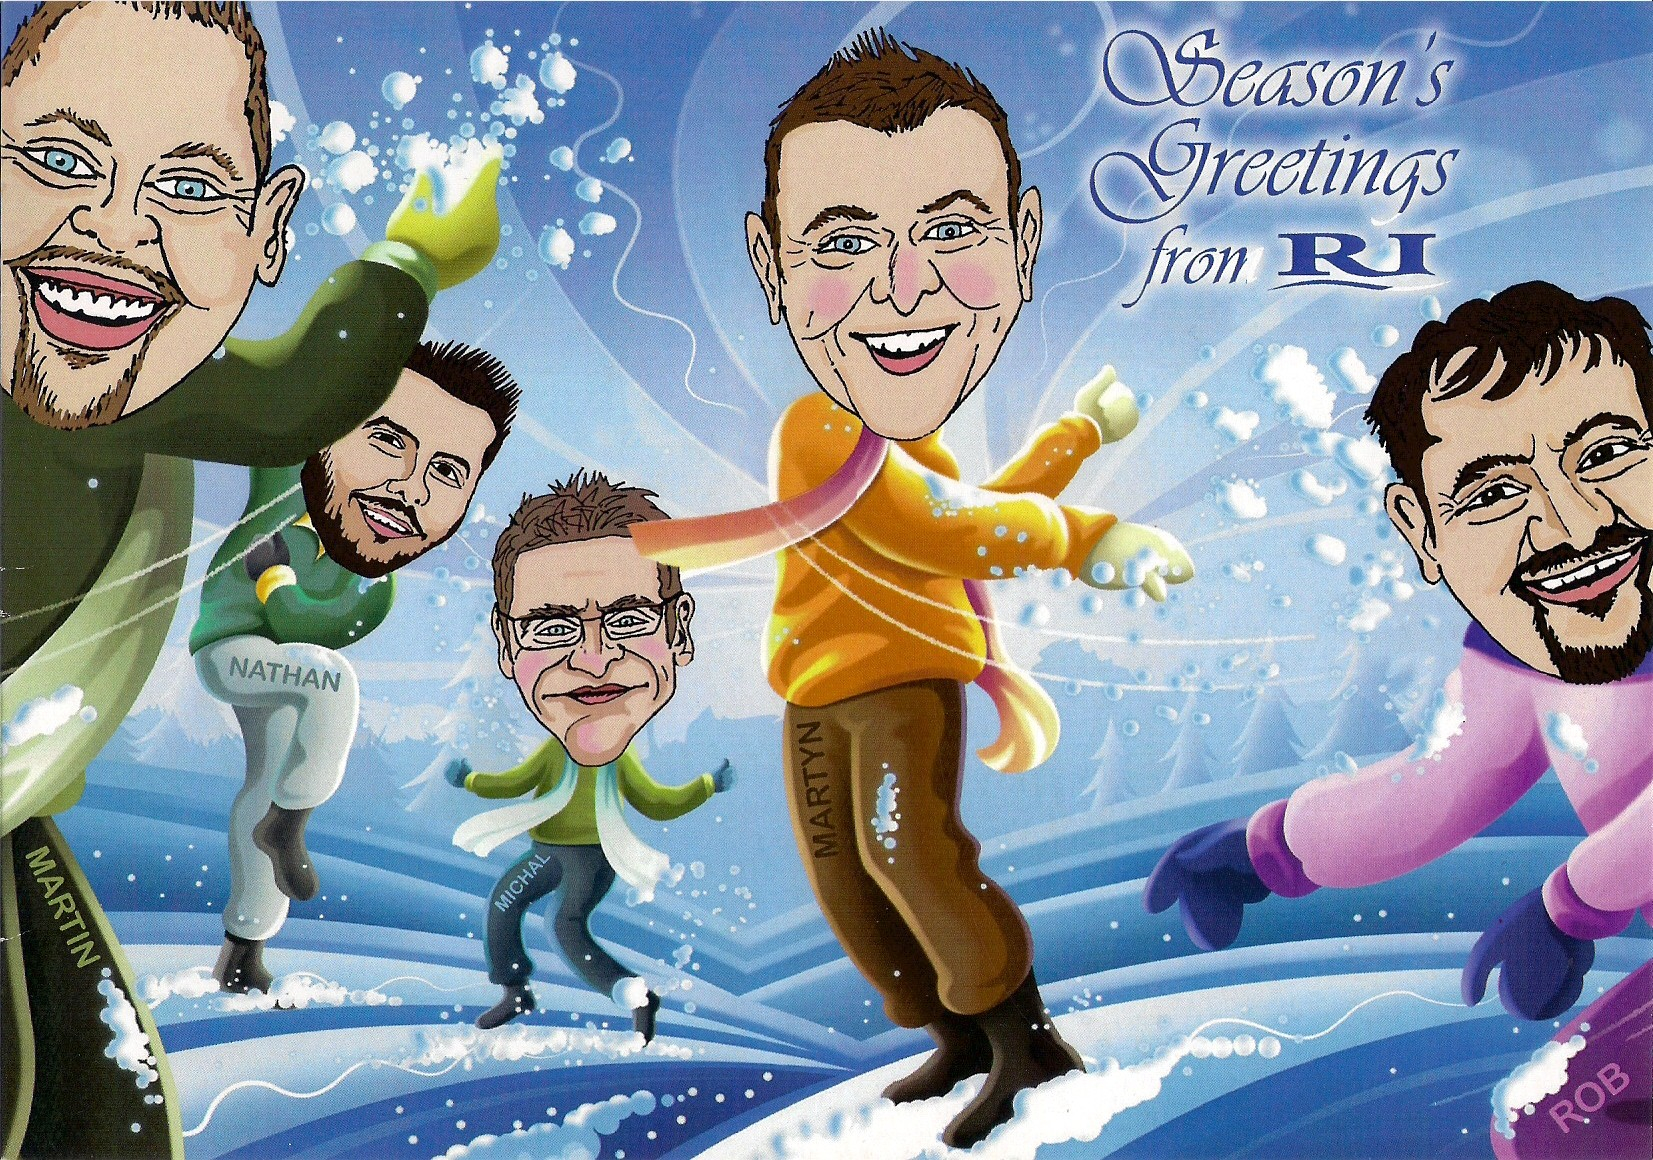 CARICATURES FROM PHOTOSCornwall Caricatures | Cornwall Caricatures